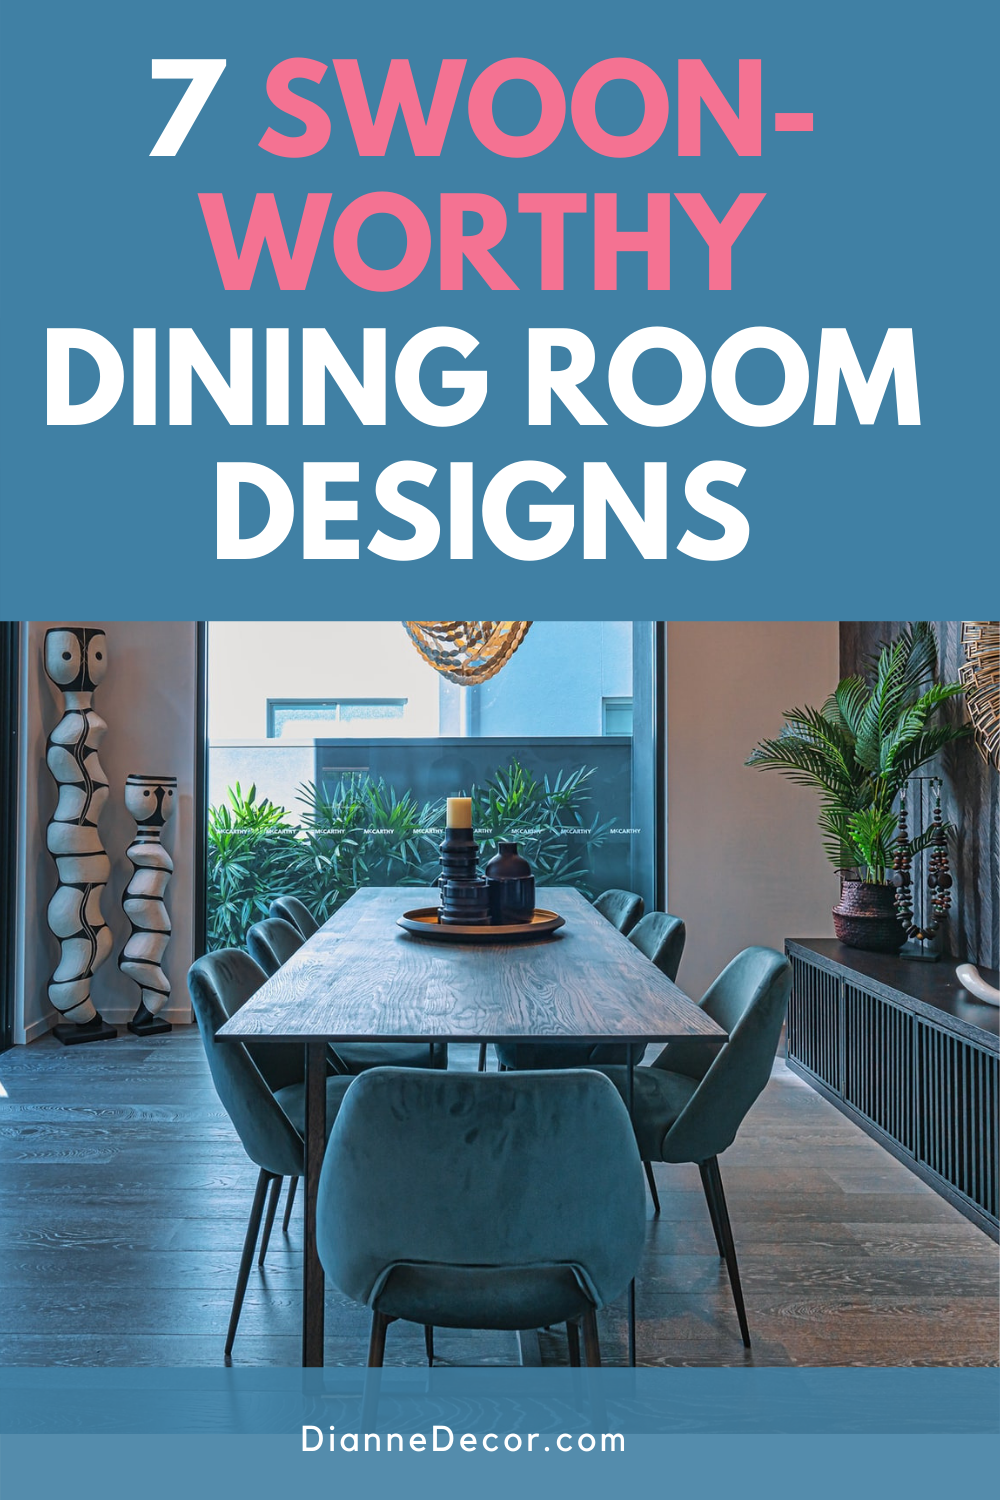 Although it may not be the most used space in your home, a formal dining room can be an incredible space. Here are 7 swoon-worthy dining room designs. #diningroomdesign #diningroomideas #diningroomdecor #homedecorating #interiordesign #interiordecorating #interiorstyle #diningrooms